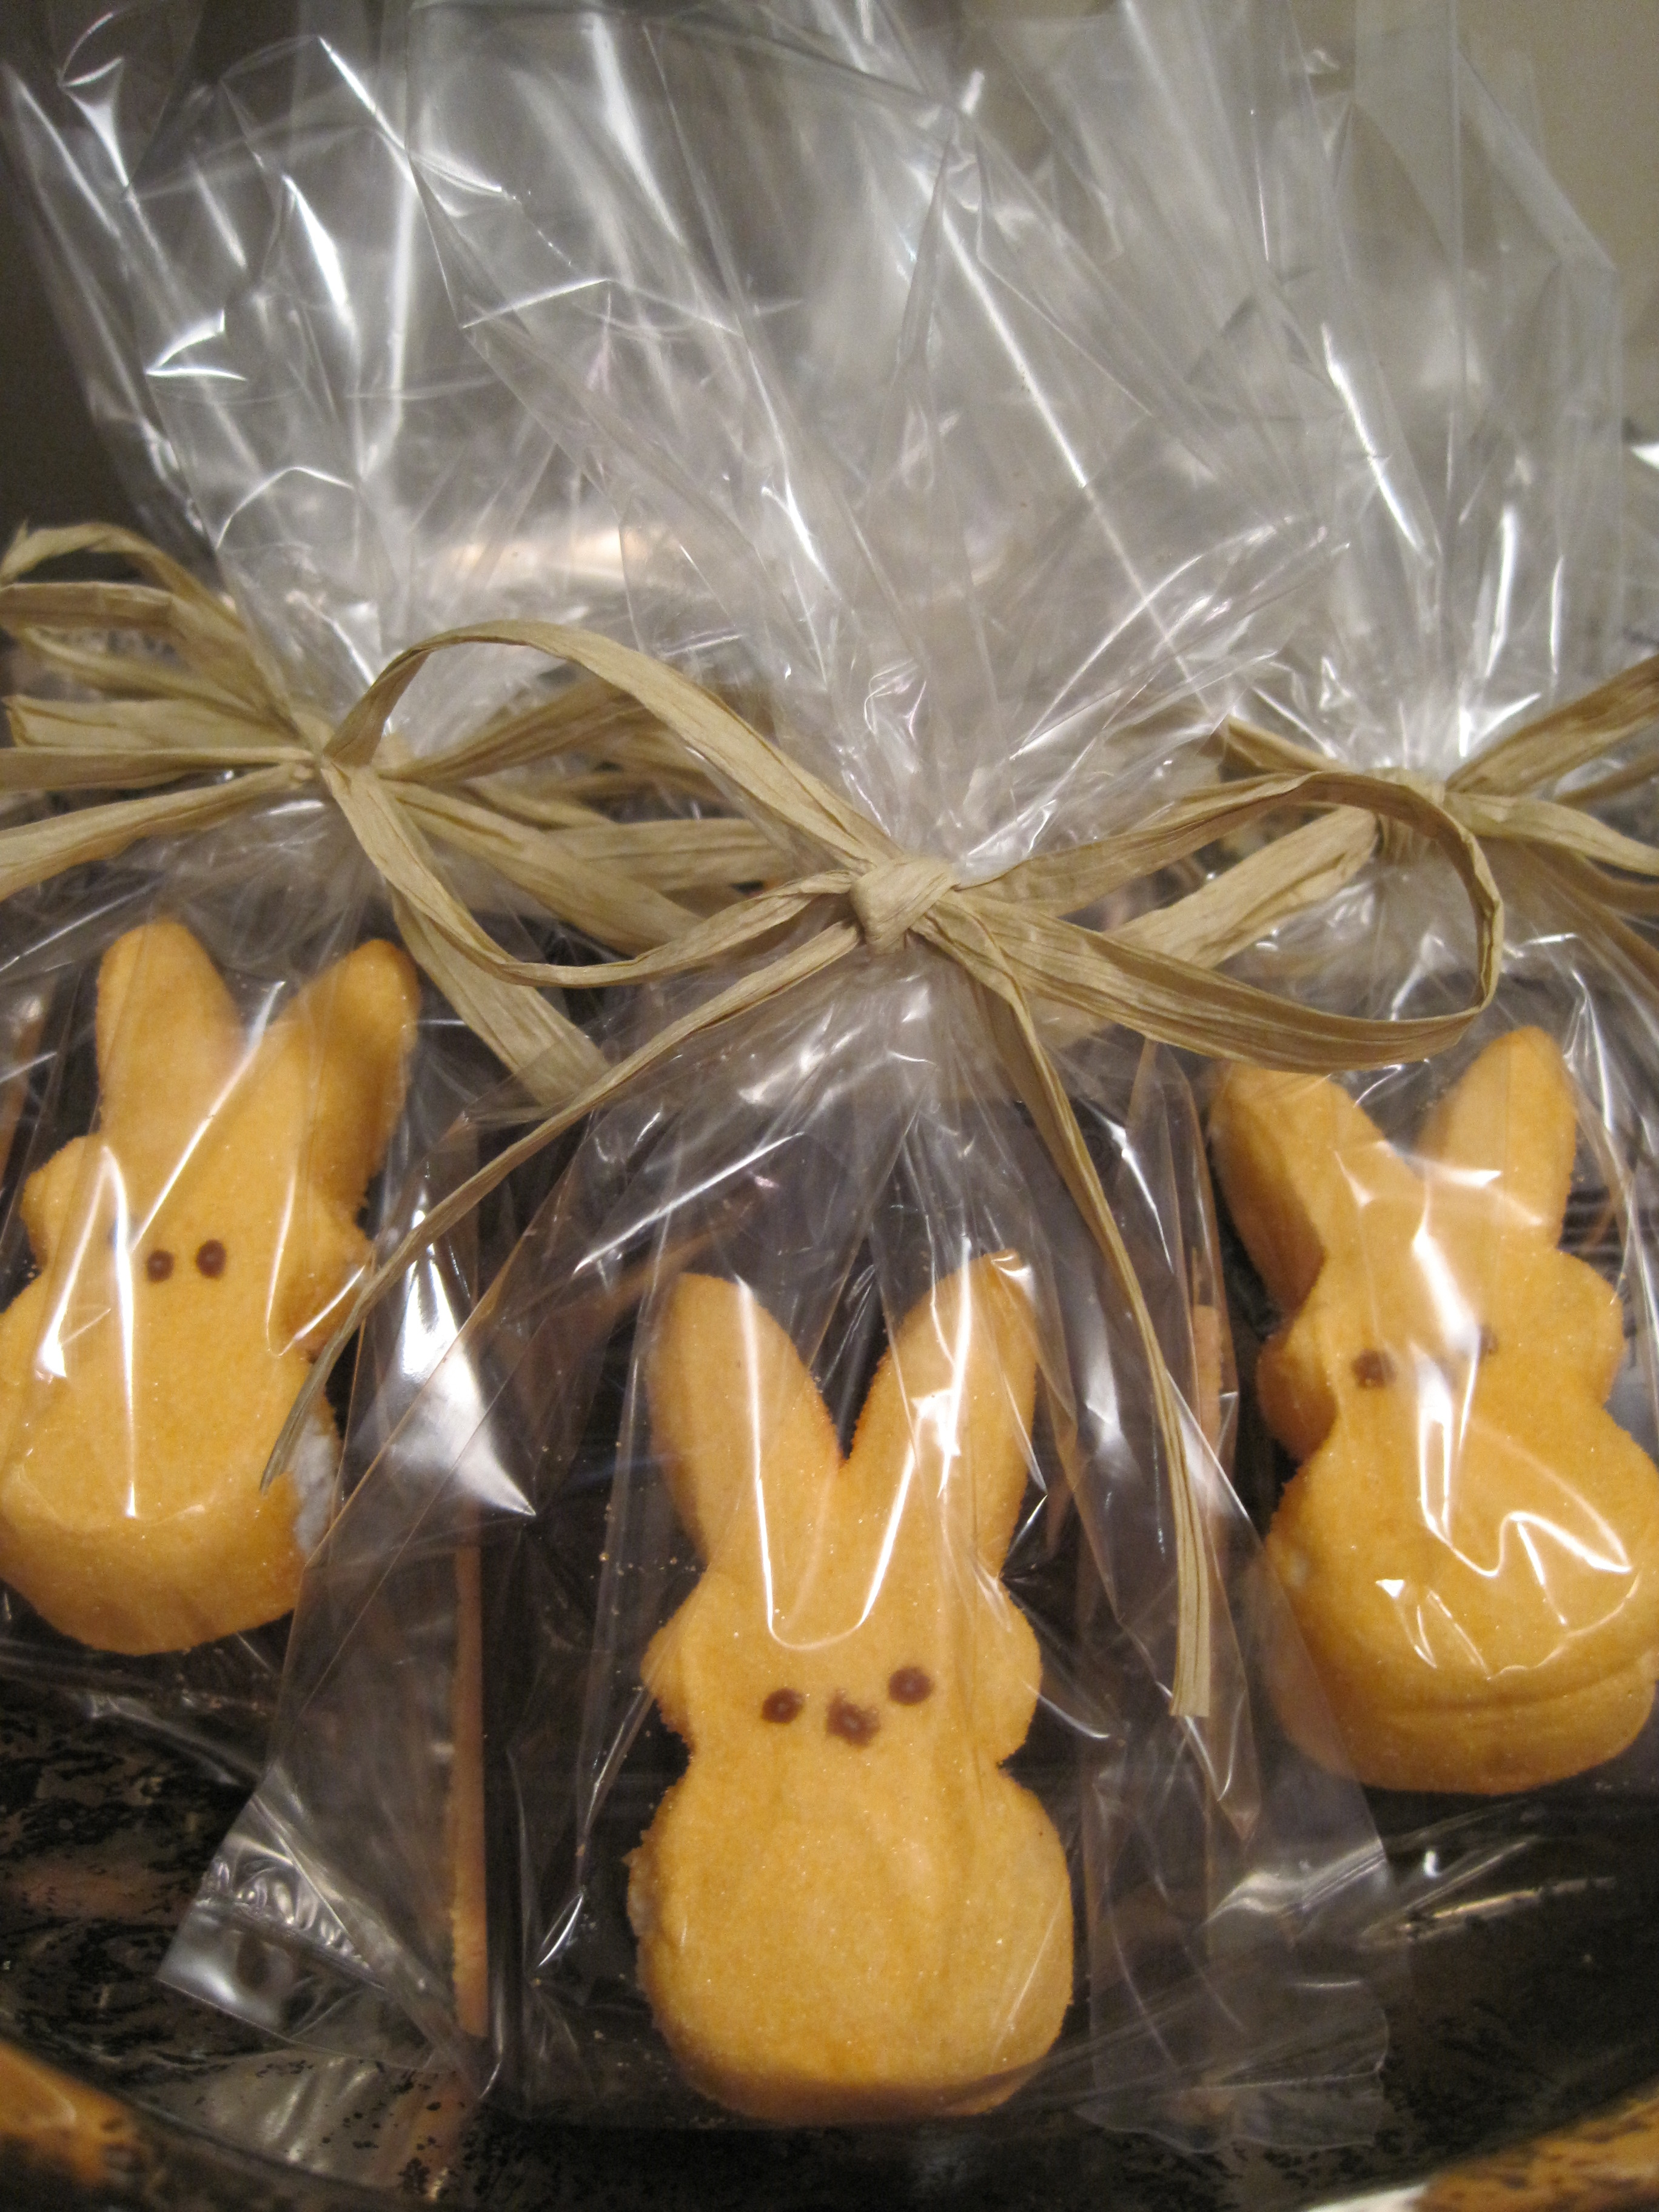 Diy easter party favors peep smores stylish spoon heres an idea for a fun simple and inexpensive party favor peep smores give them as favors at easter or a baby shower particularly one with a duck or negle Gallery